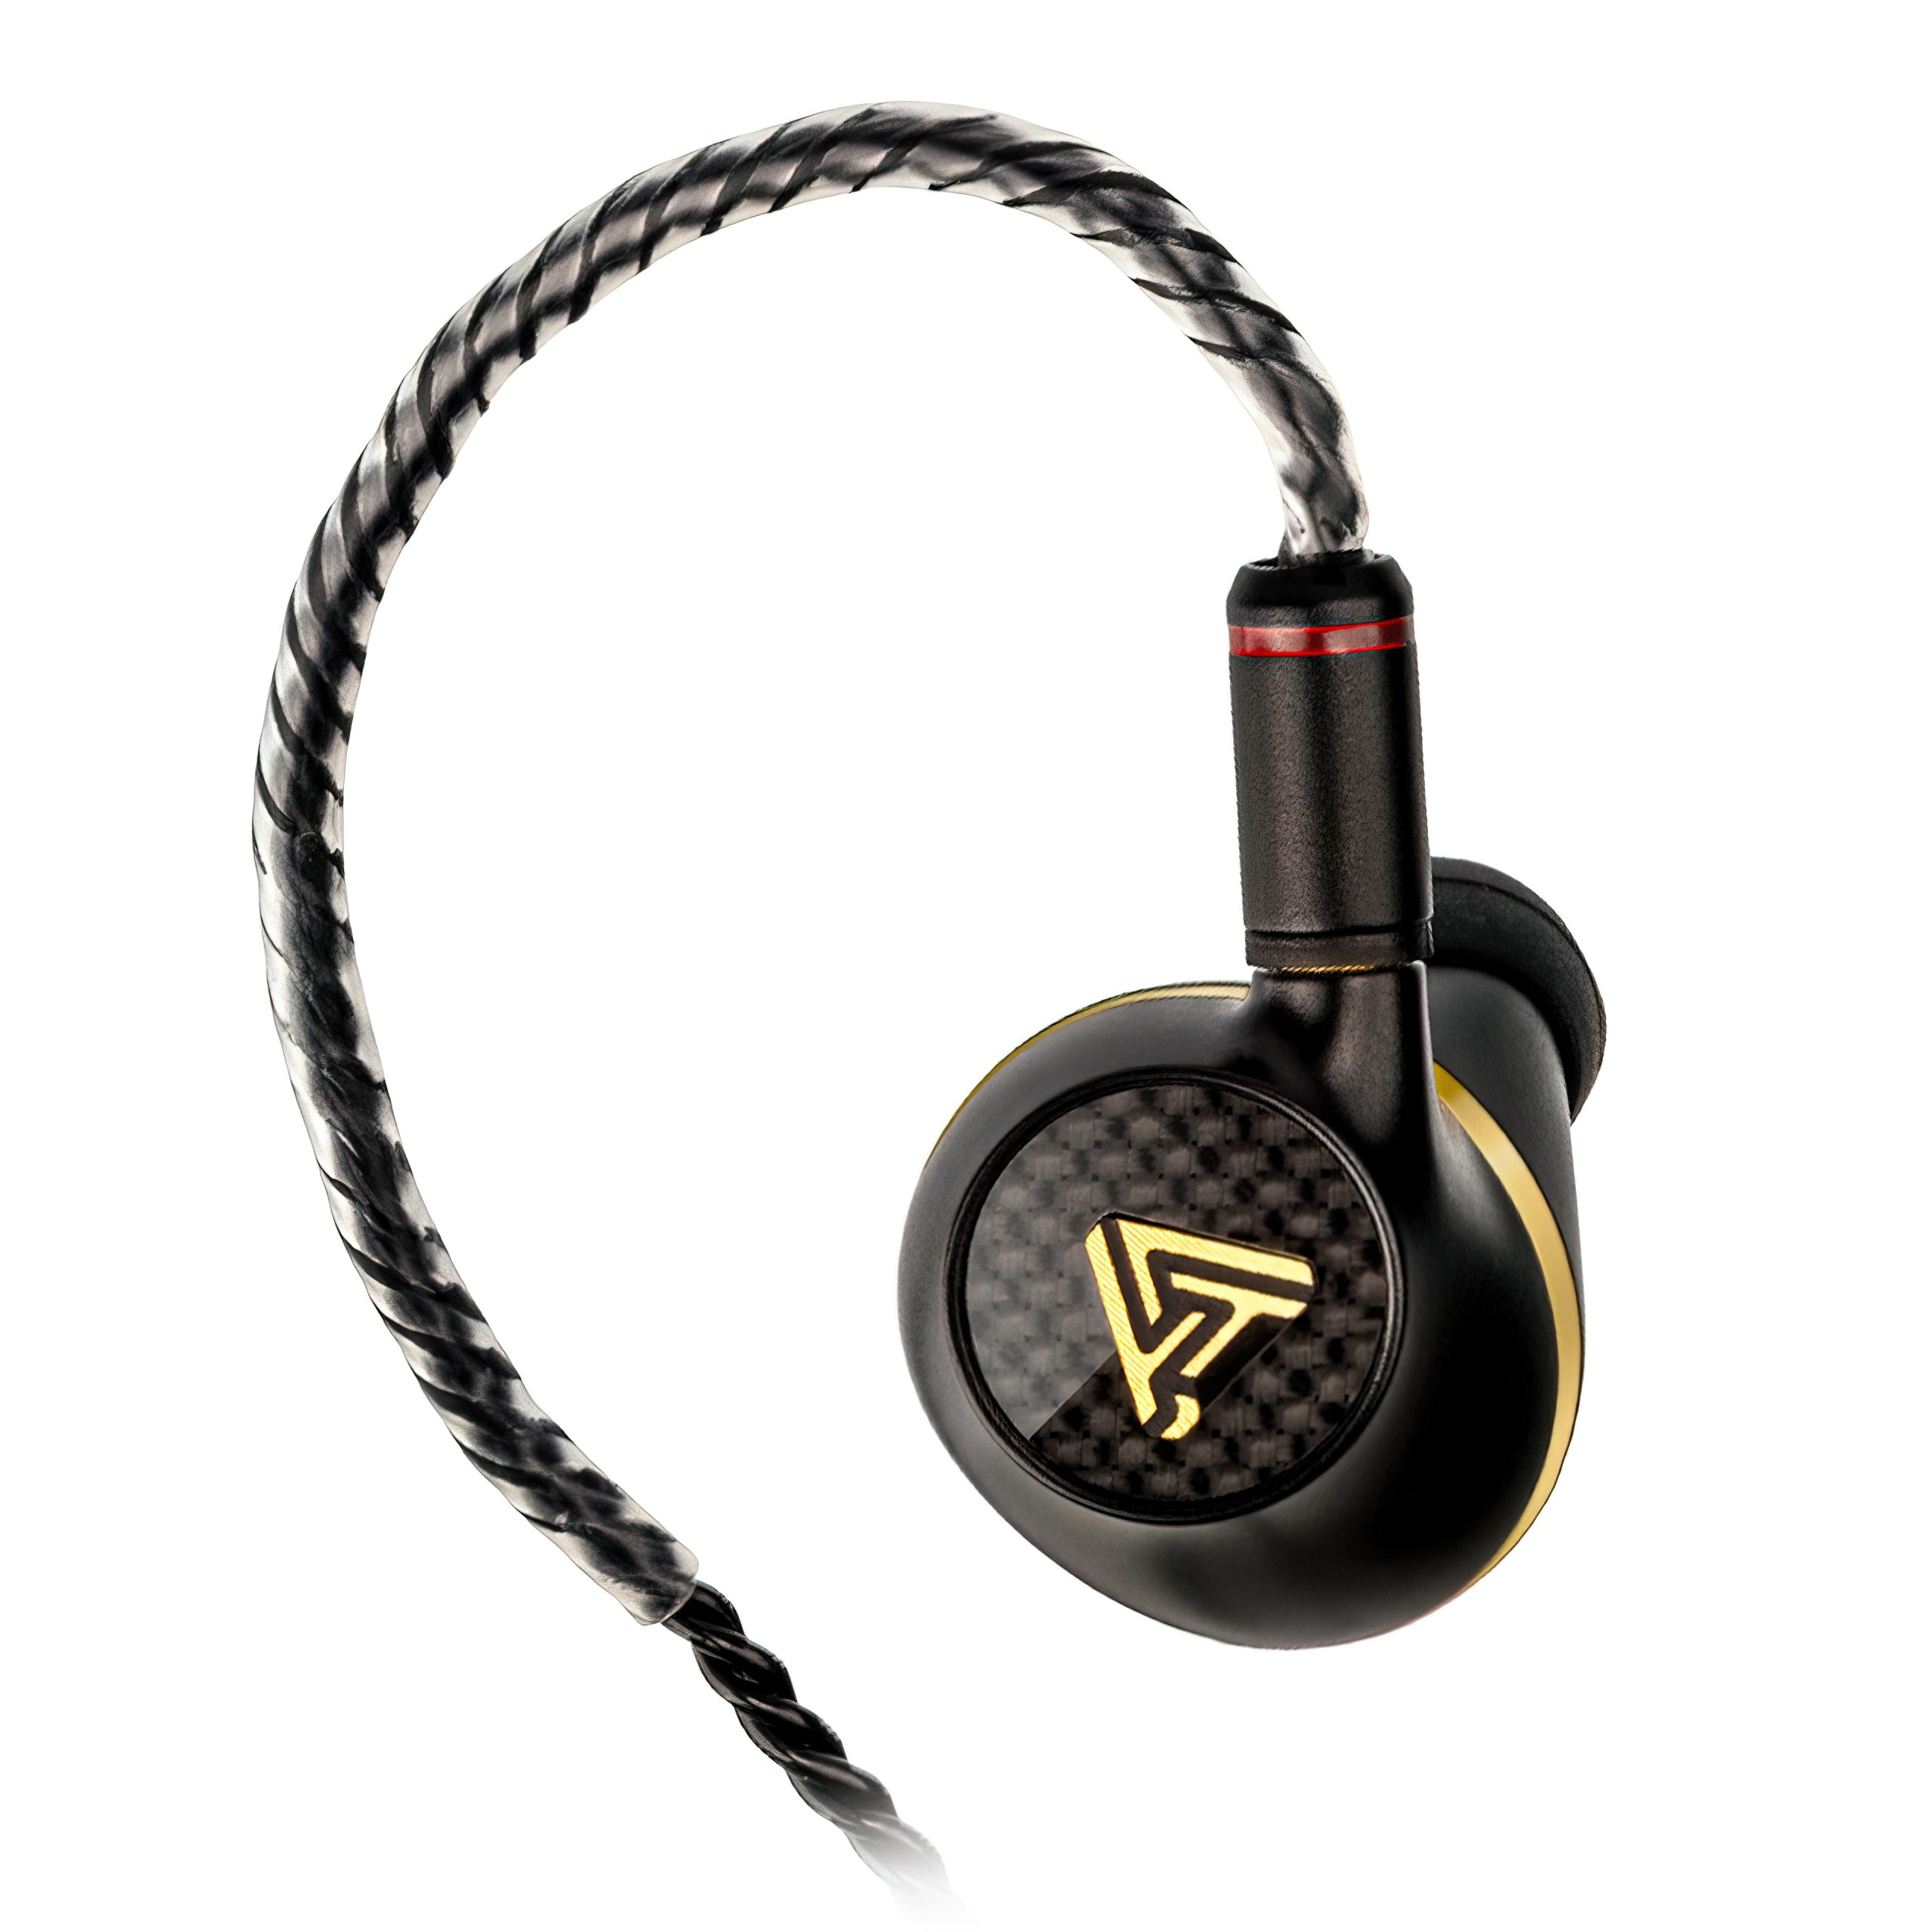 Audeze Euclid Side Profile with Cable-gigapixel-compressed-width-3840px